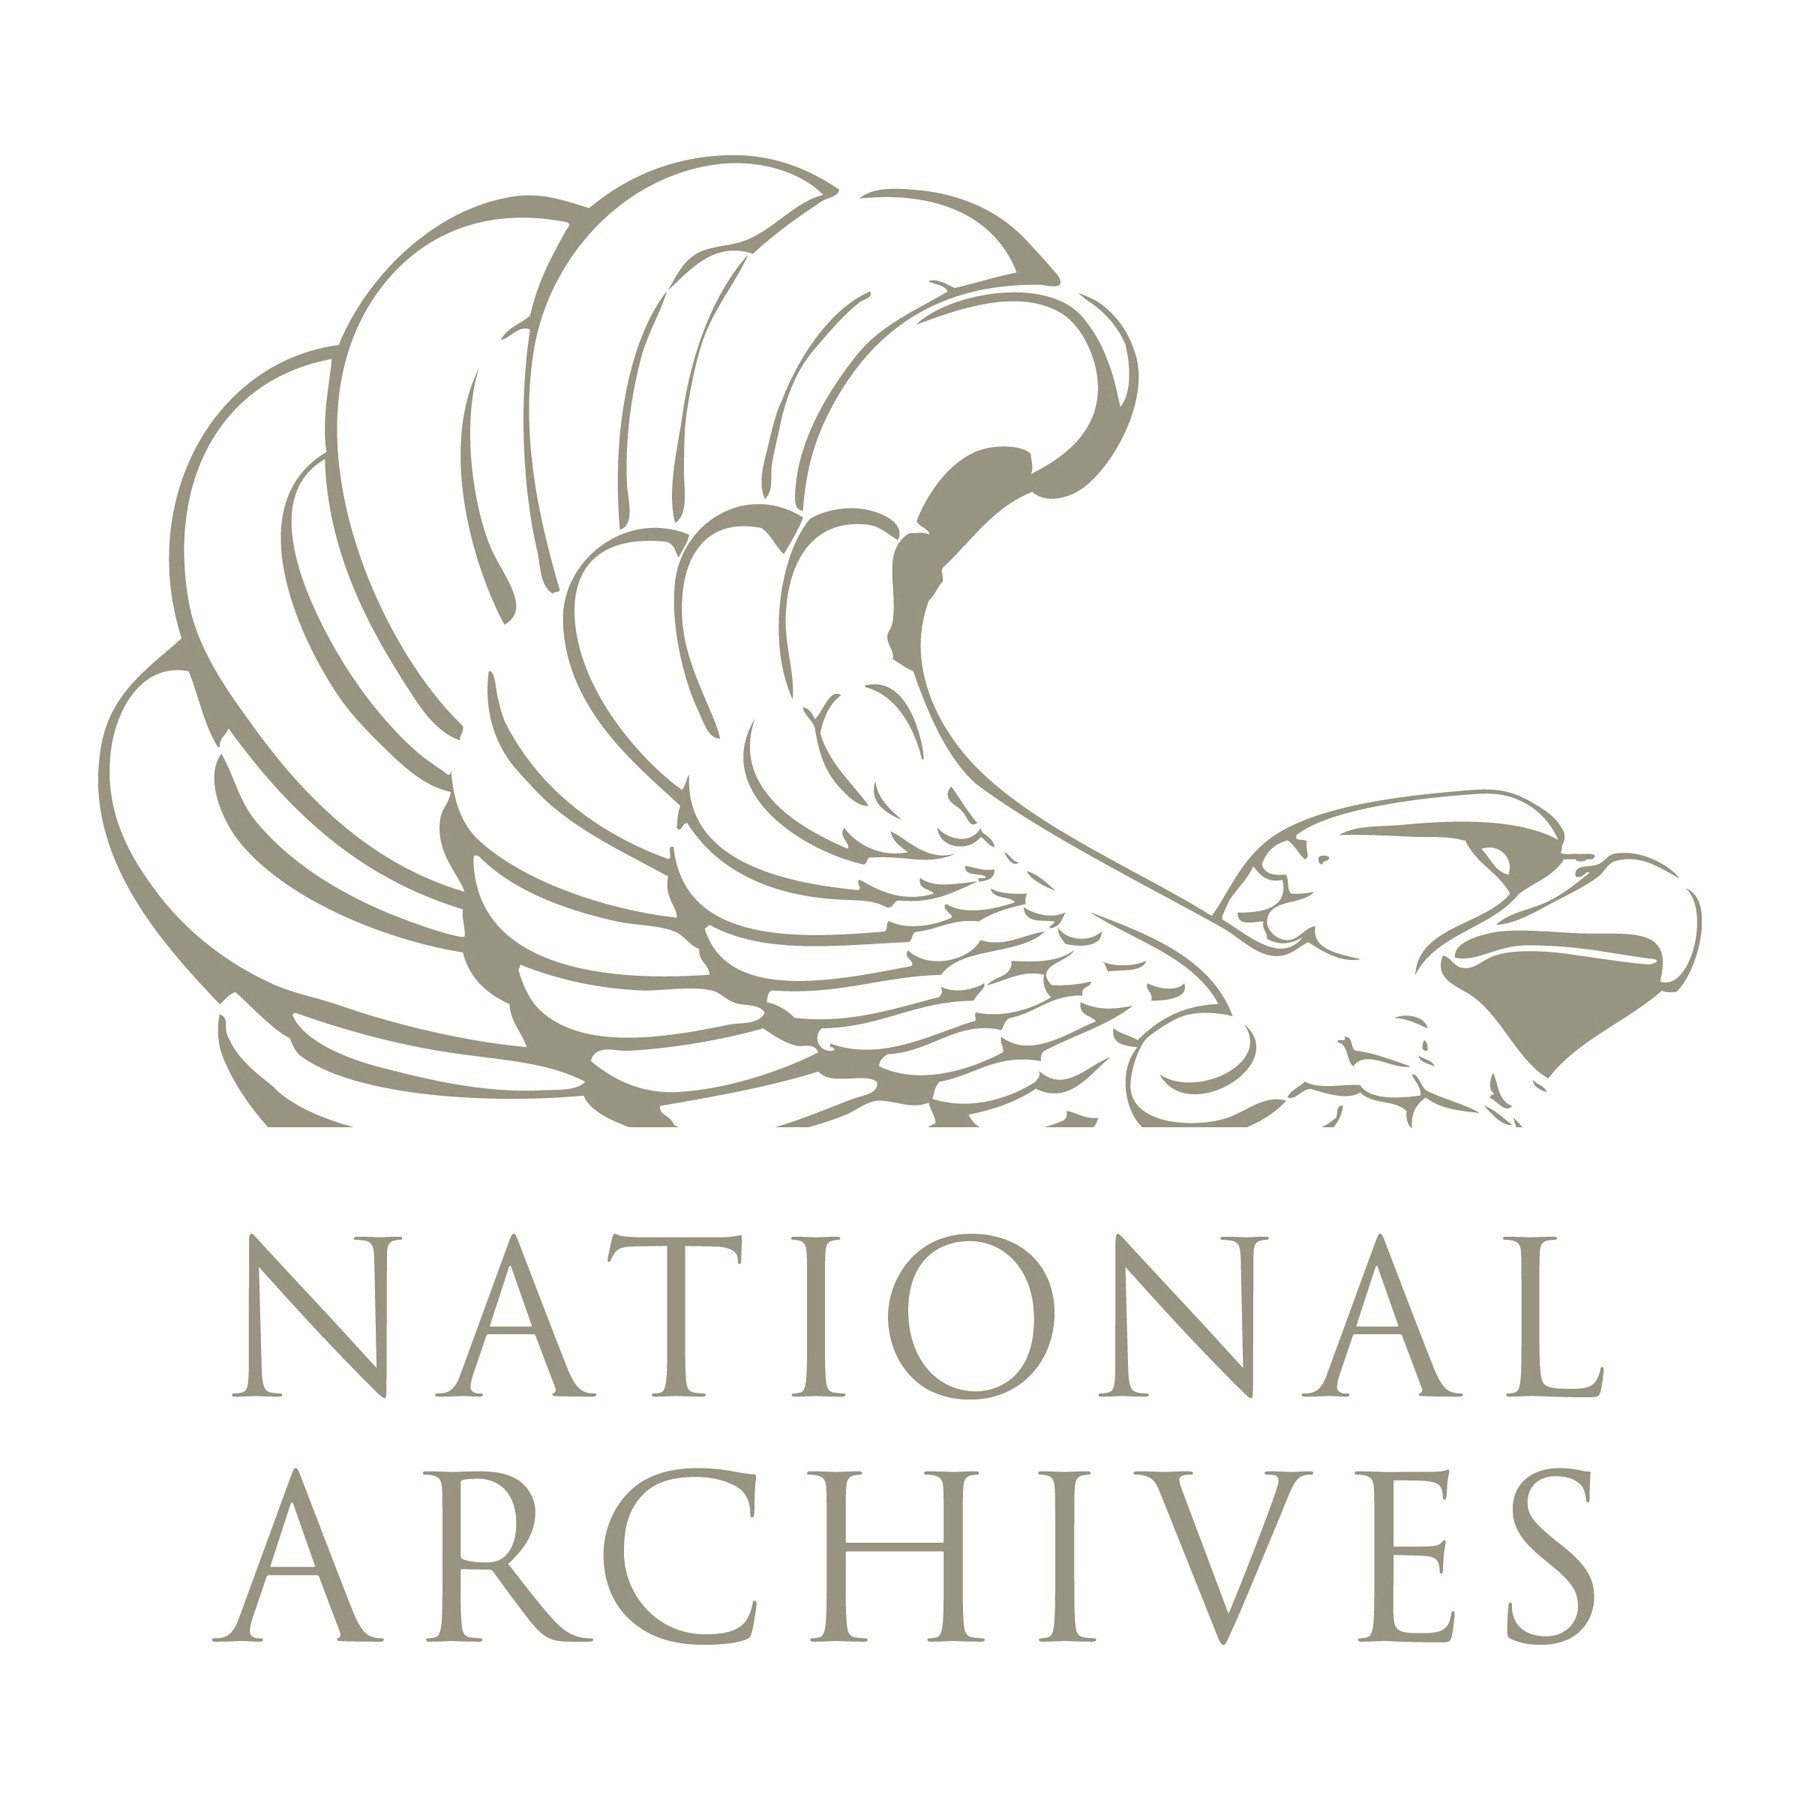 Source: http://blogs.archives.gov/aotus/wp-content/uploads/2010/07/nara-logo.jpg